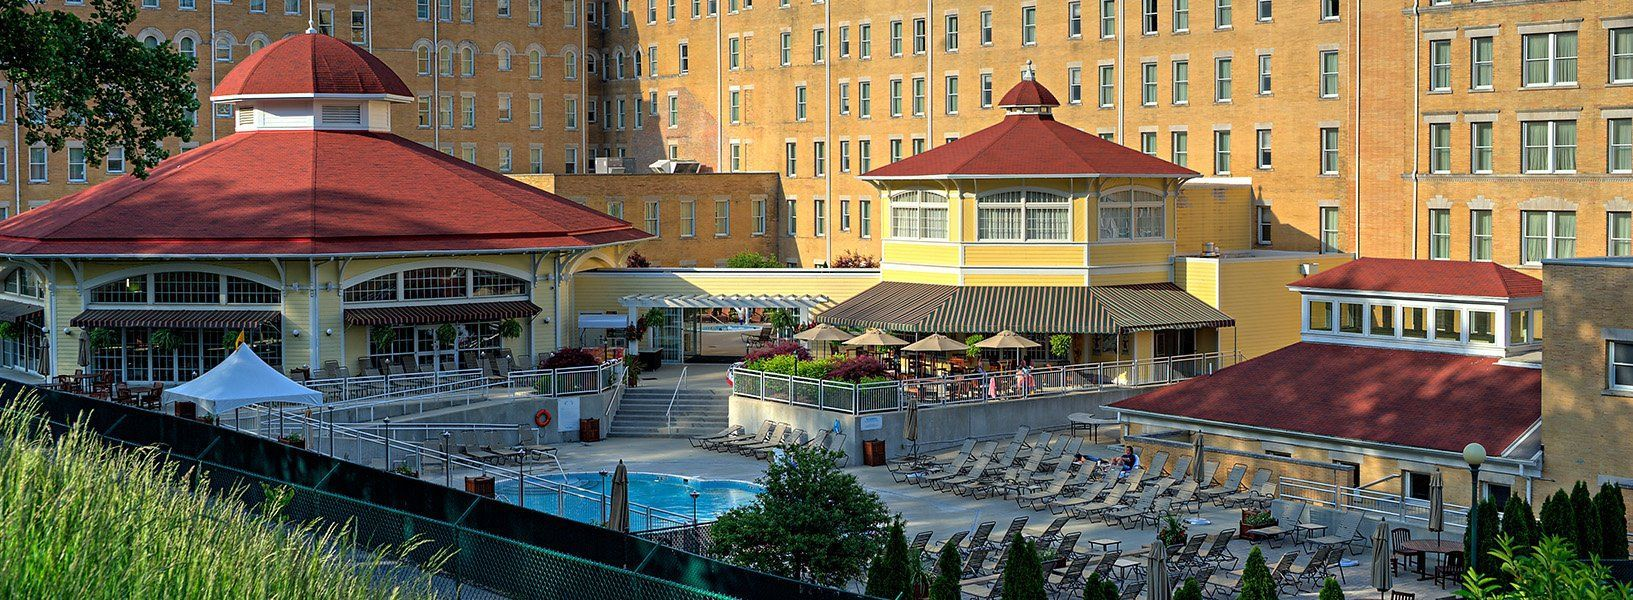 King K. reccomend French lick resort half price